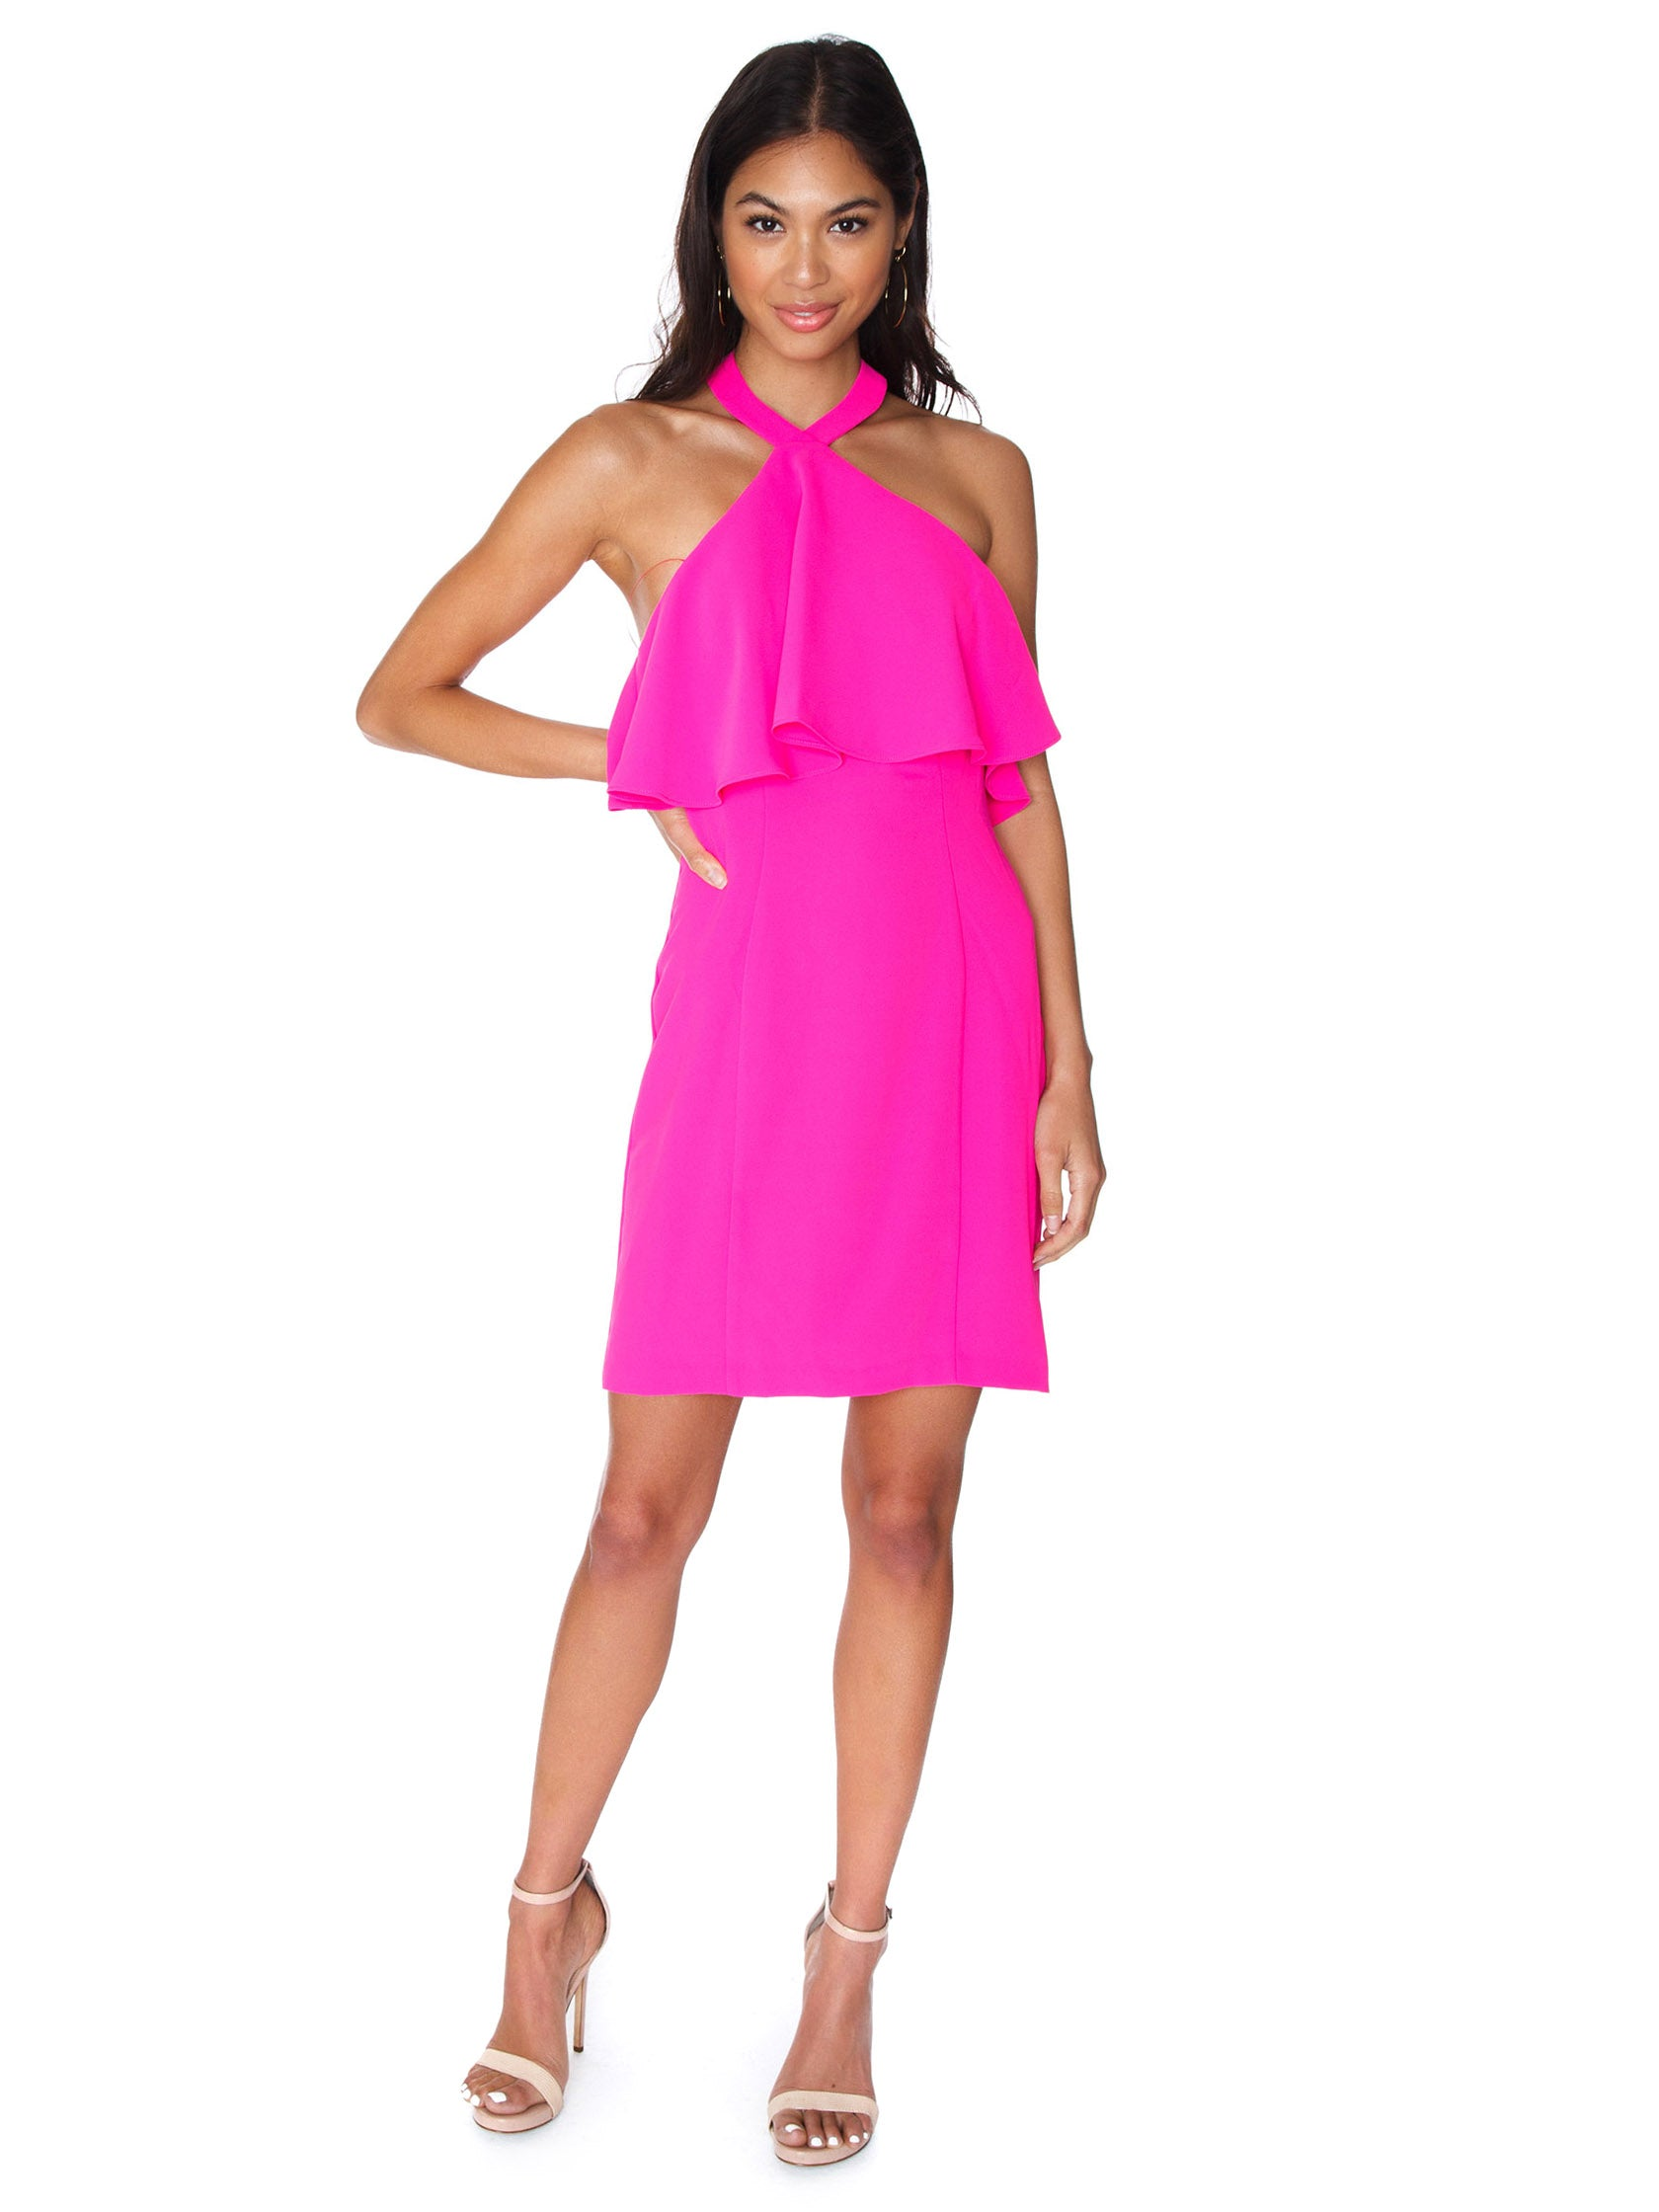 Girl outfit in a dress rental from Amanda Uprichard called Piazza Mini Dress